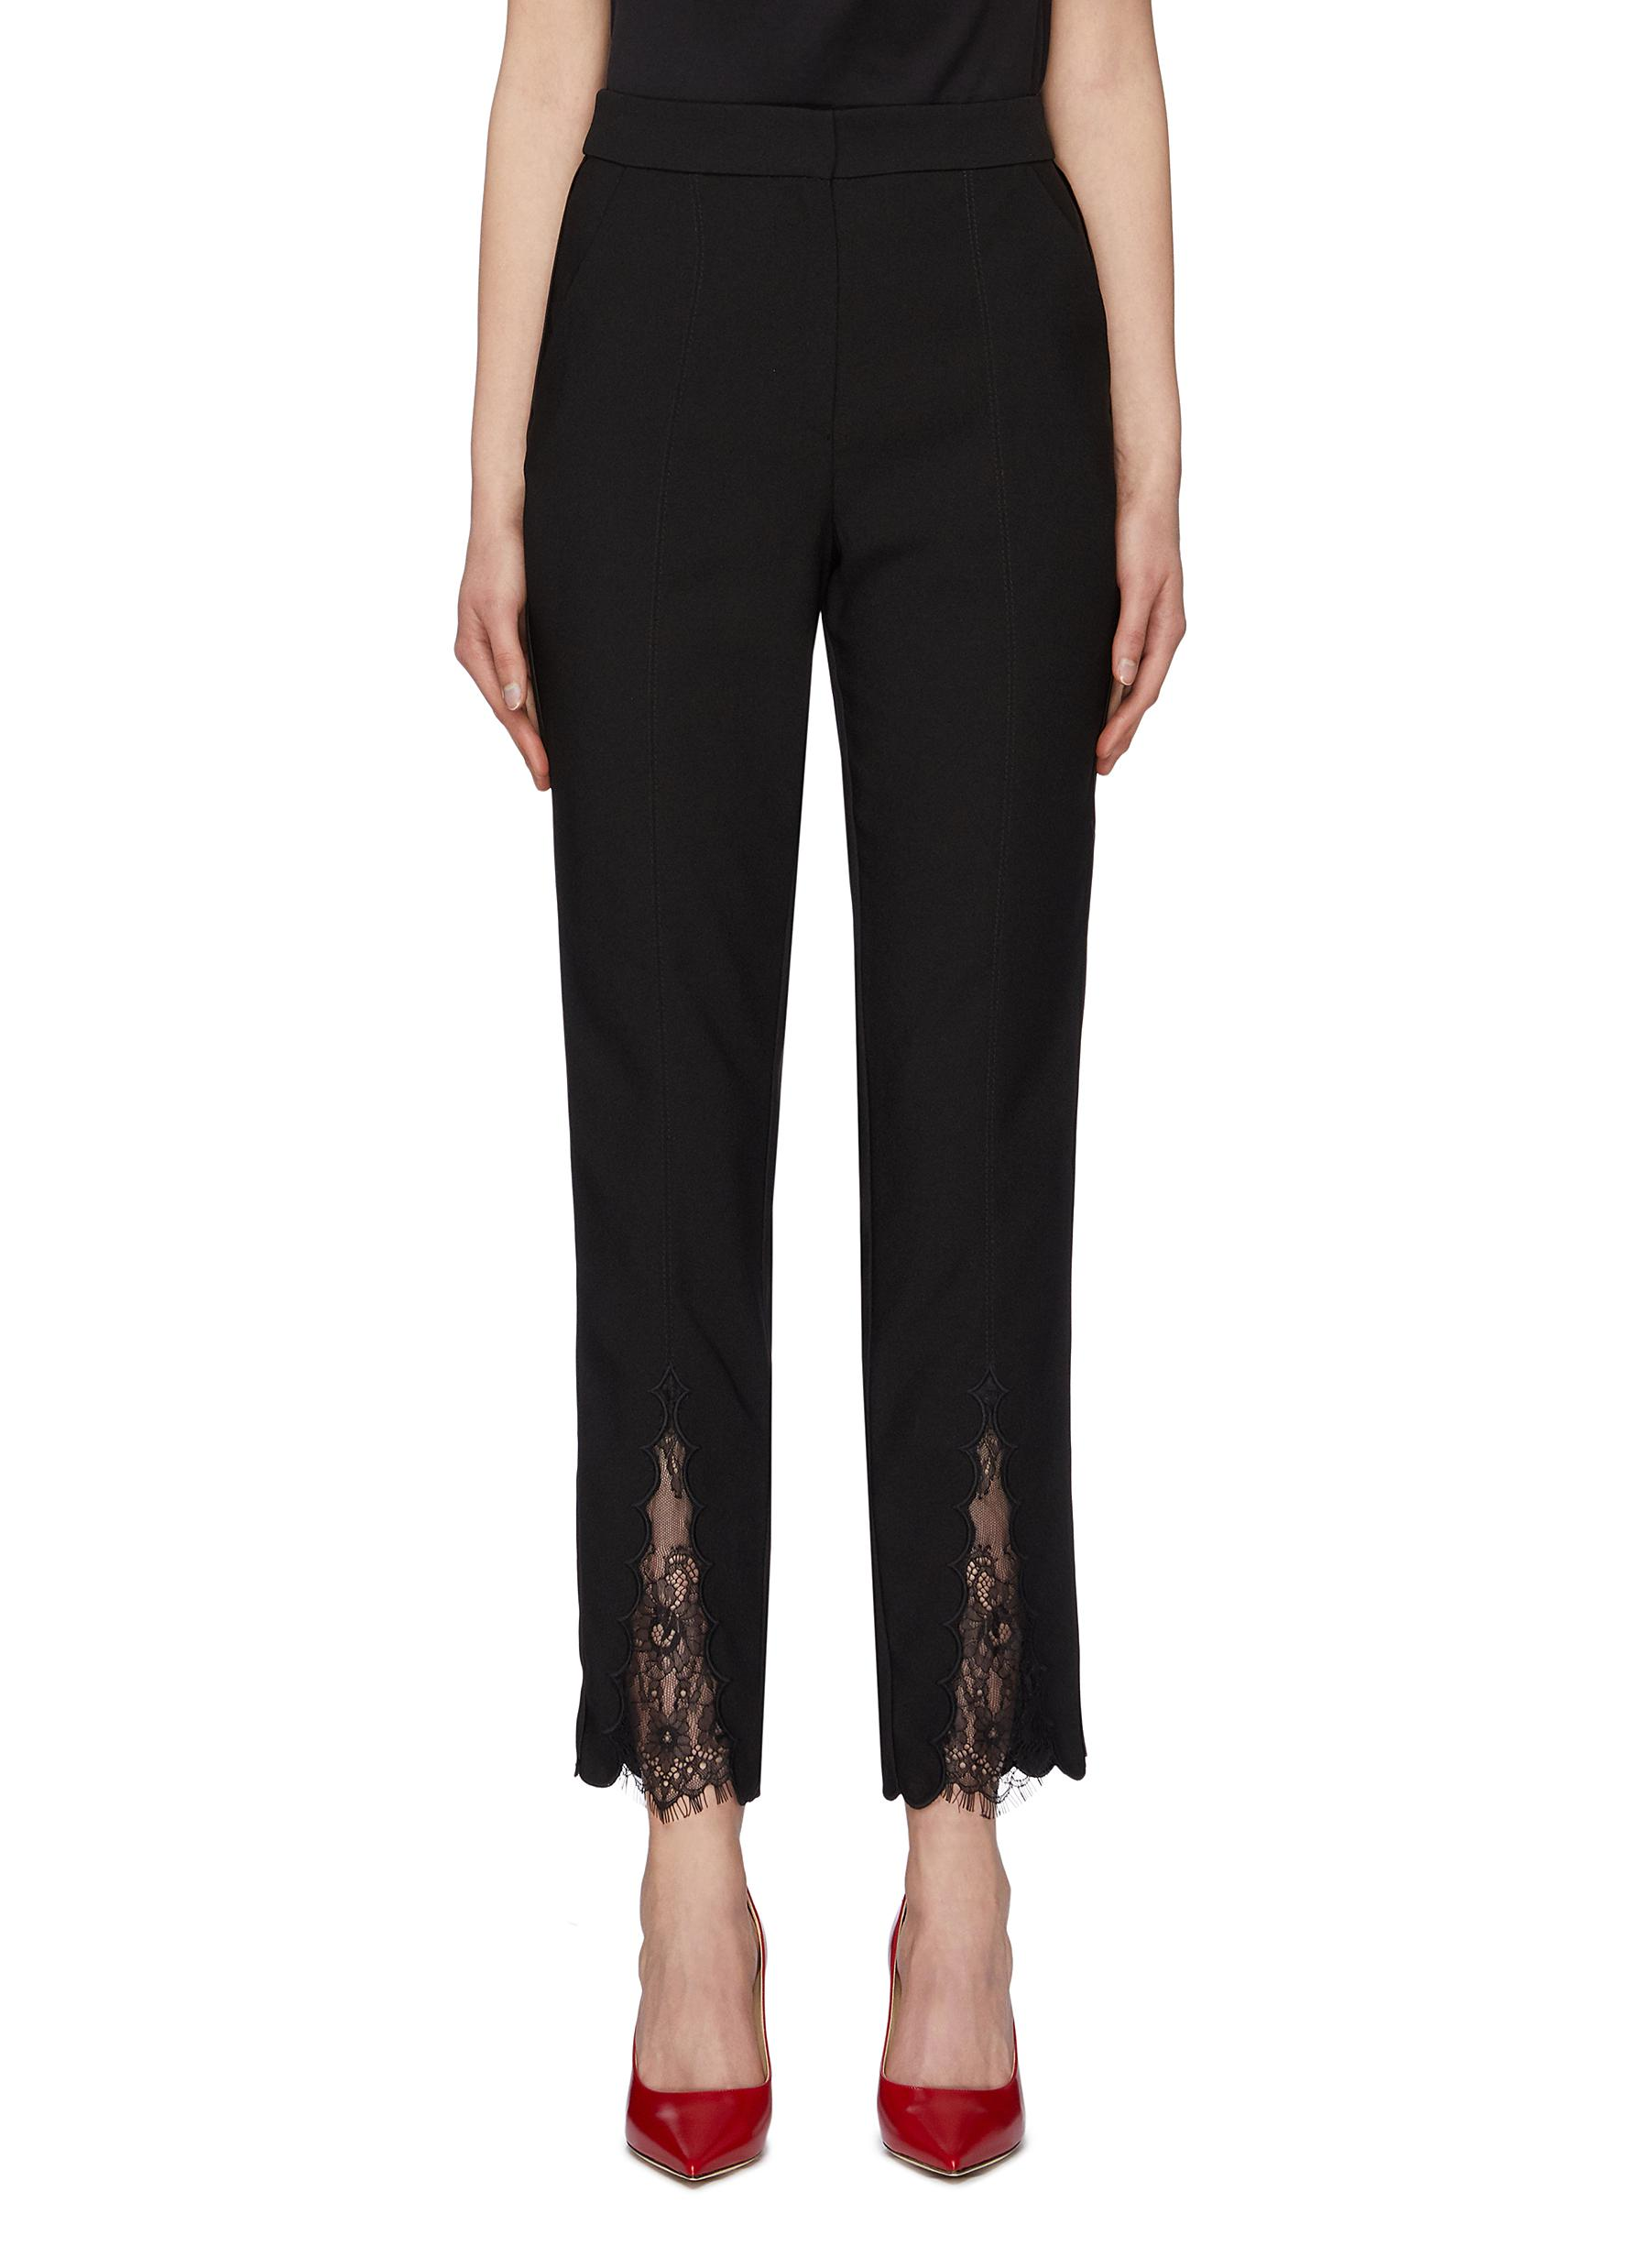 Chantilly lace panel scalloped cuff crepe pants by Self-Portrait